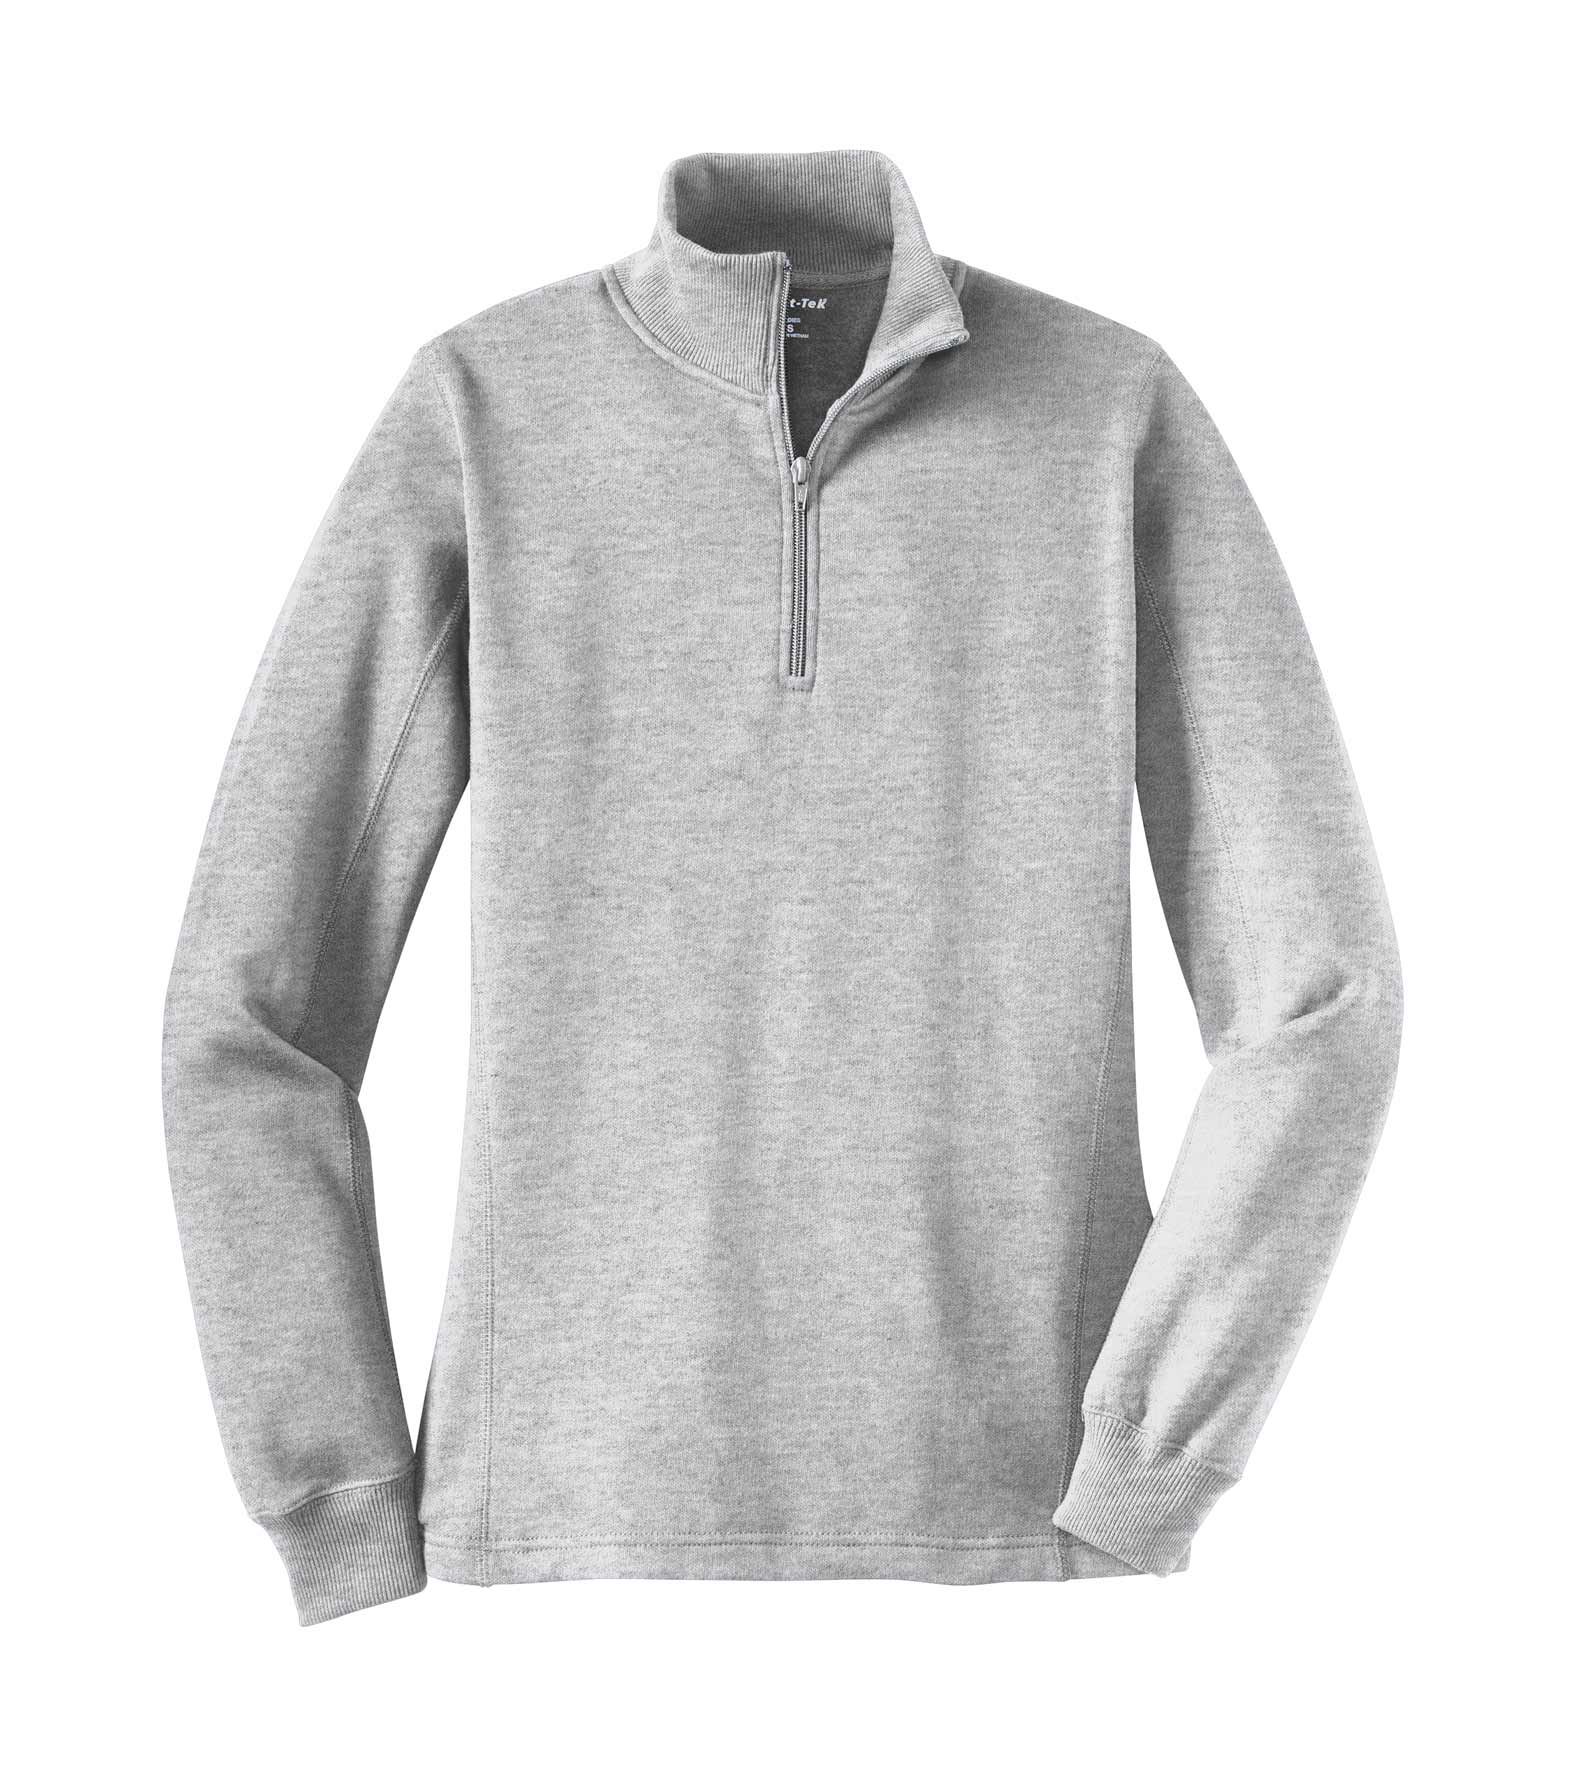 Ladies Sport-Tek� 1/4 Zip Sweatshirt